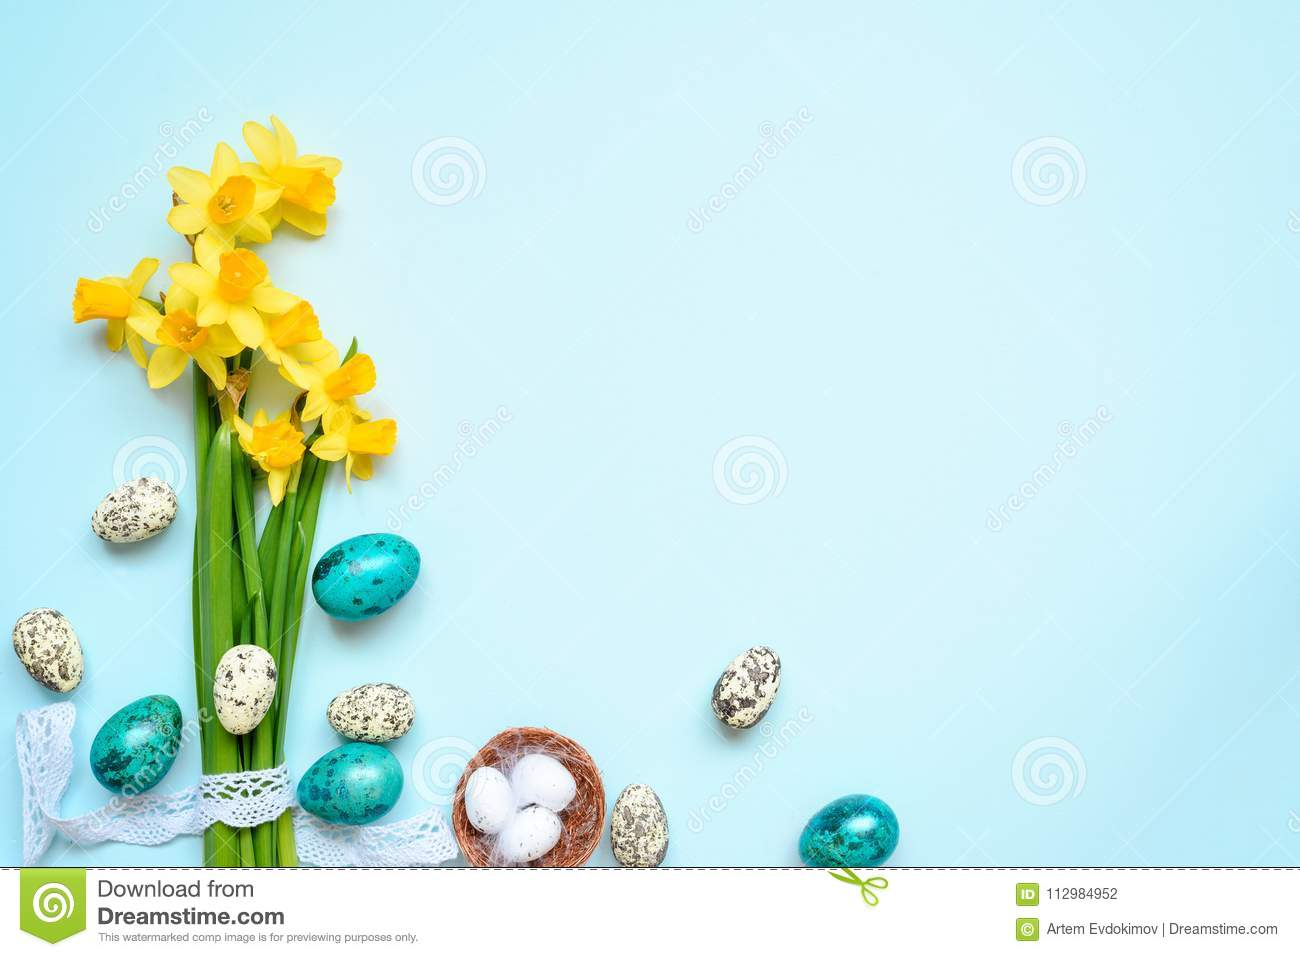 Easter Background with easter eggs and spring flowers on blue background. top view